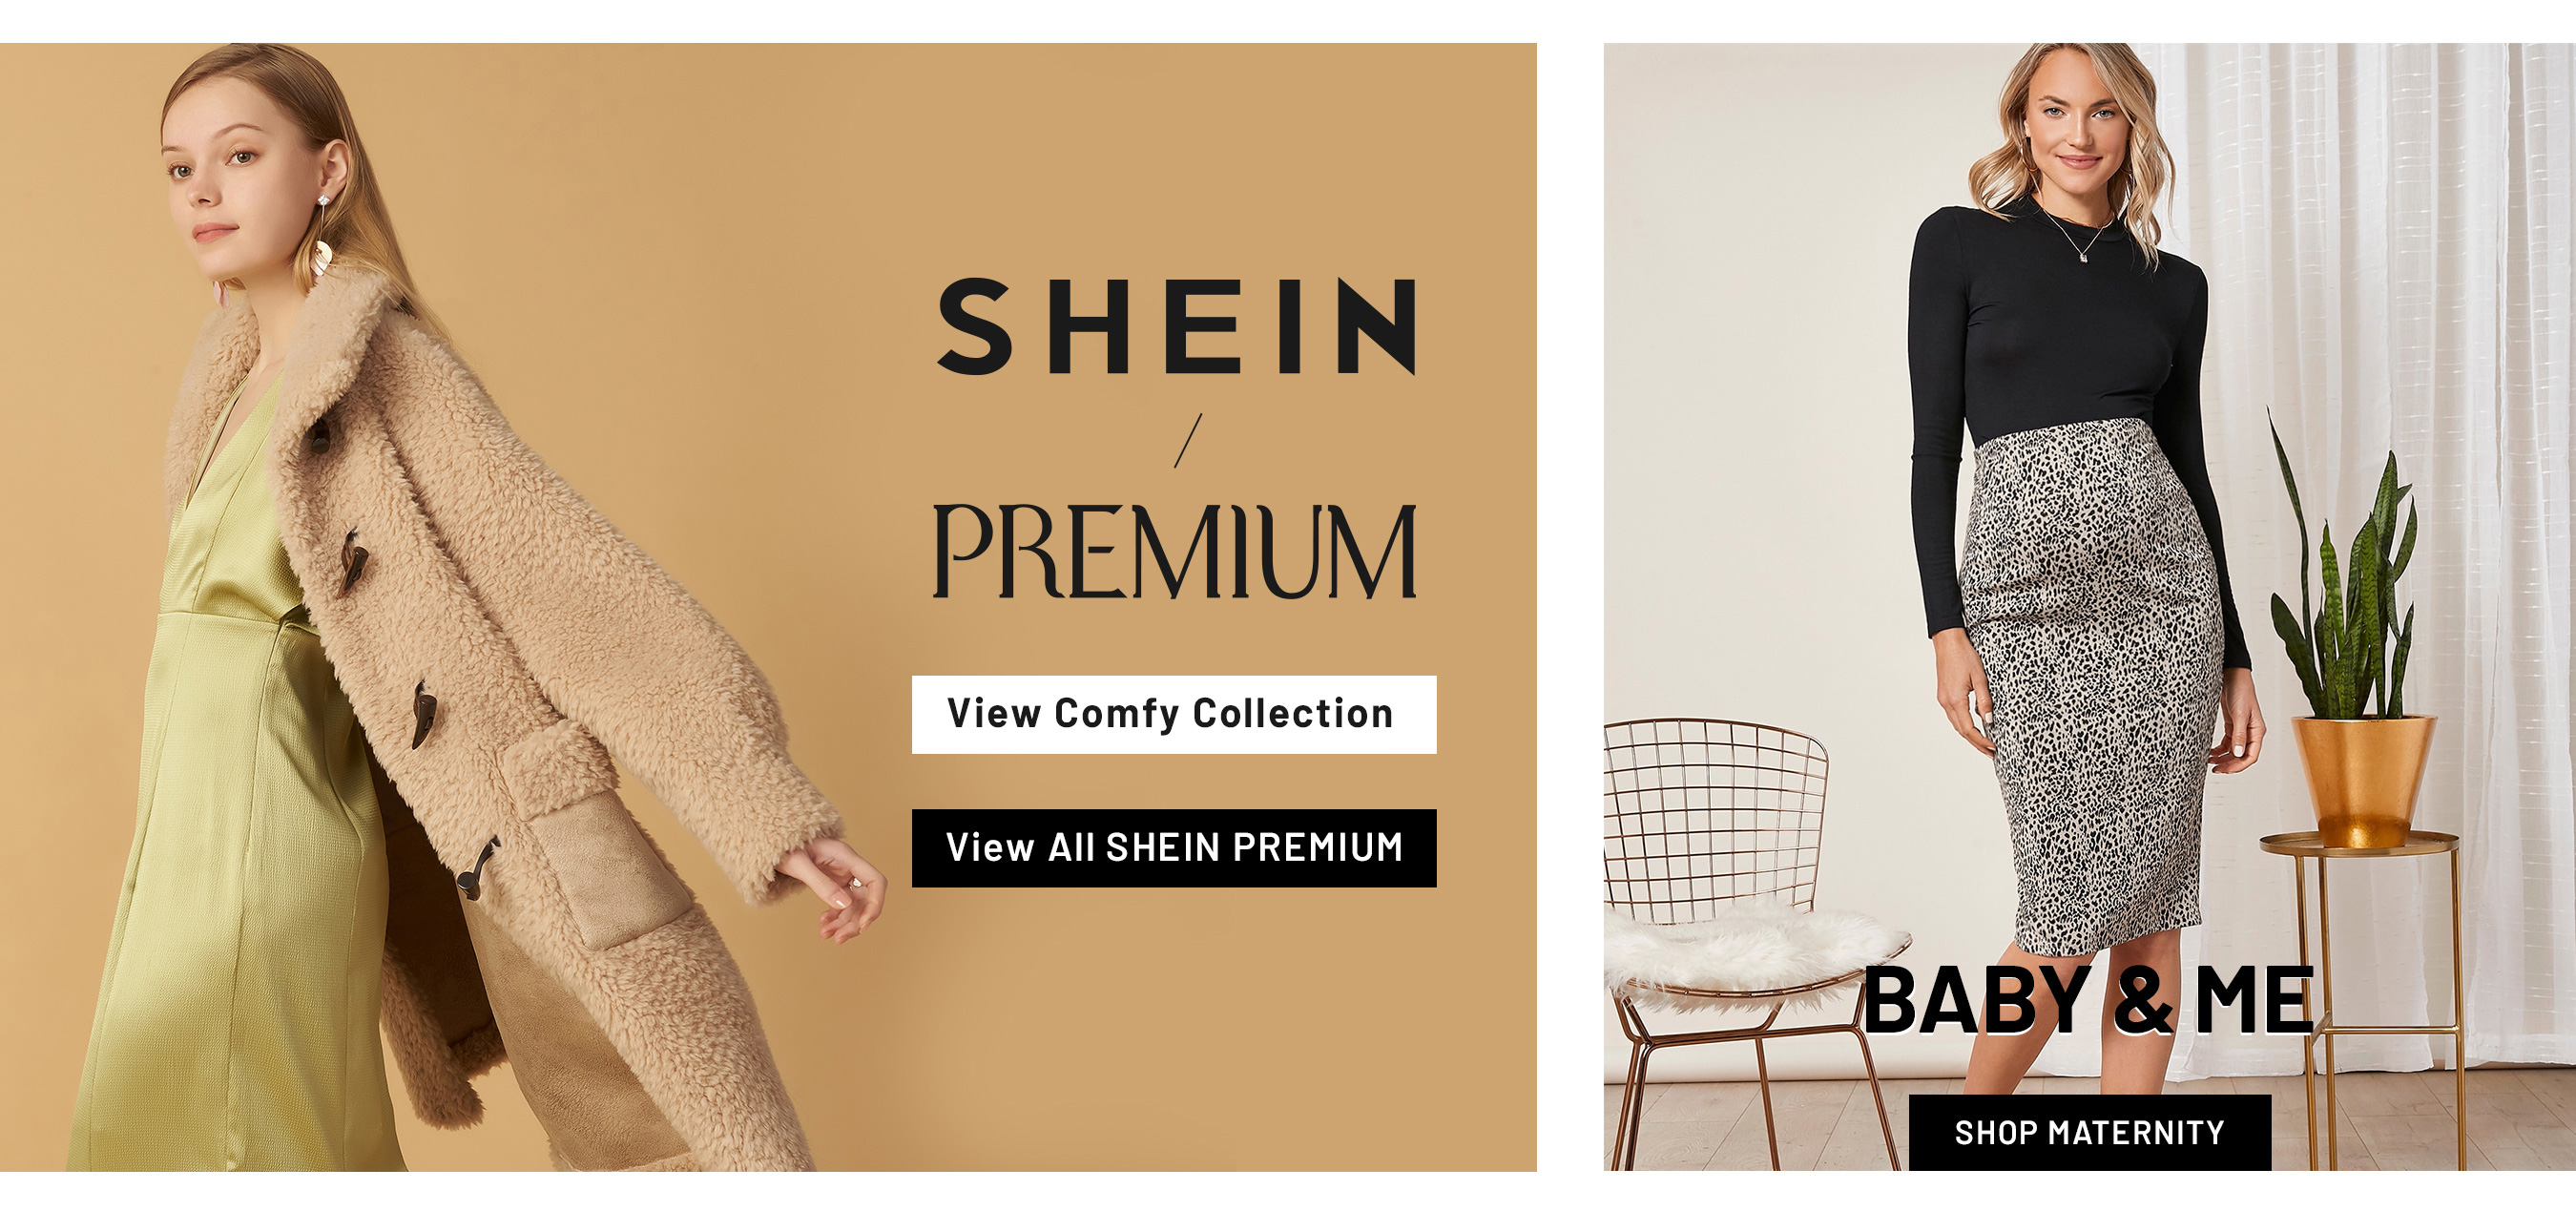 Shein Coupons - SHEIN PREMIUM COMFY starting at just $7.99